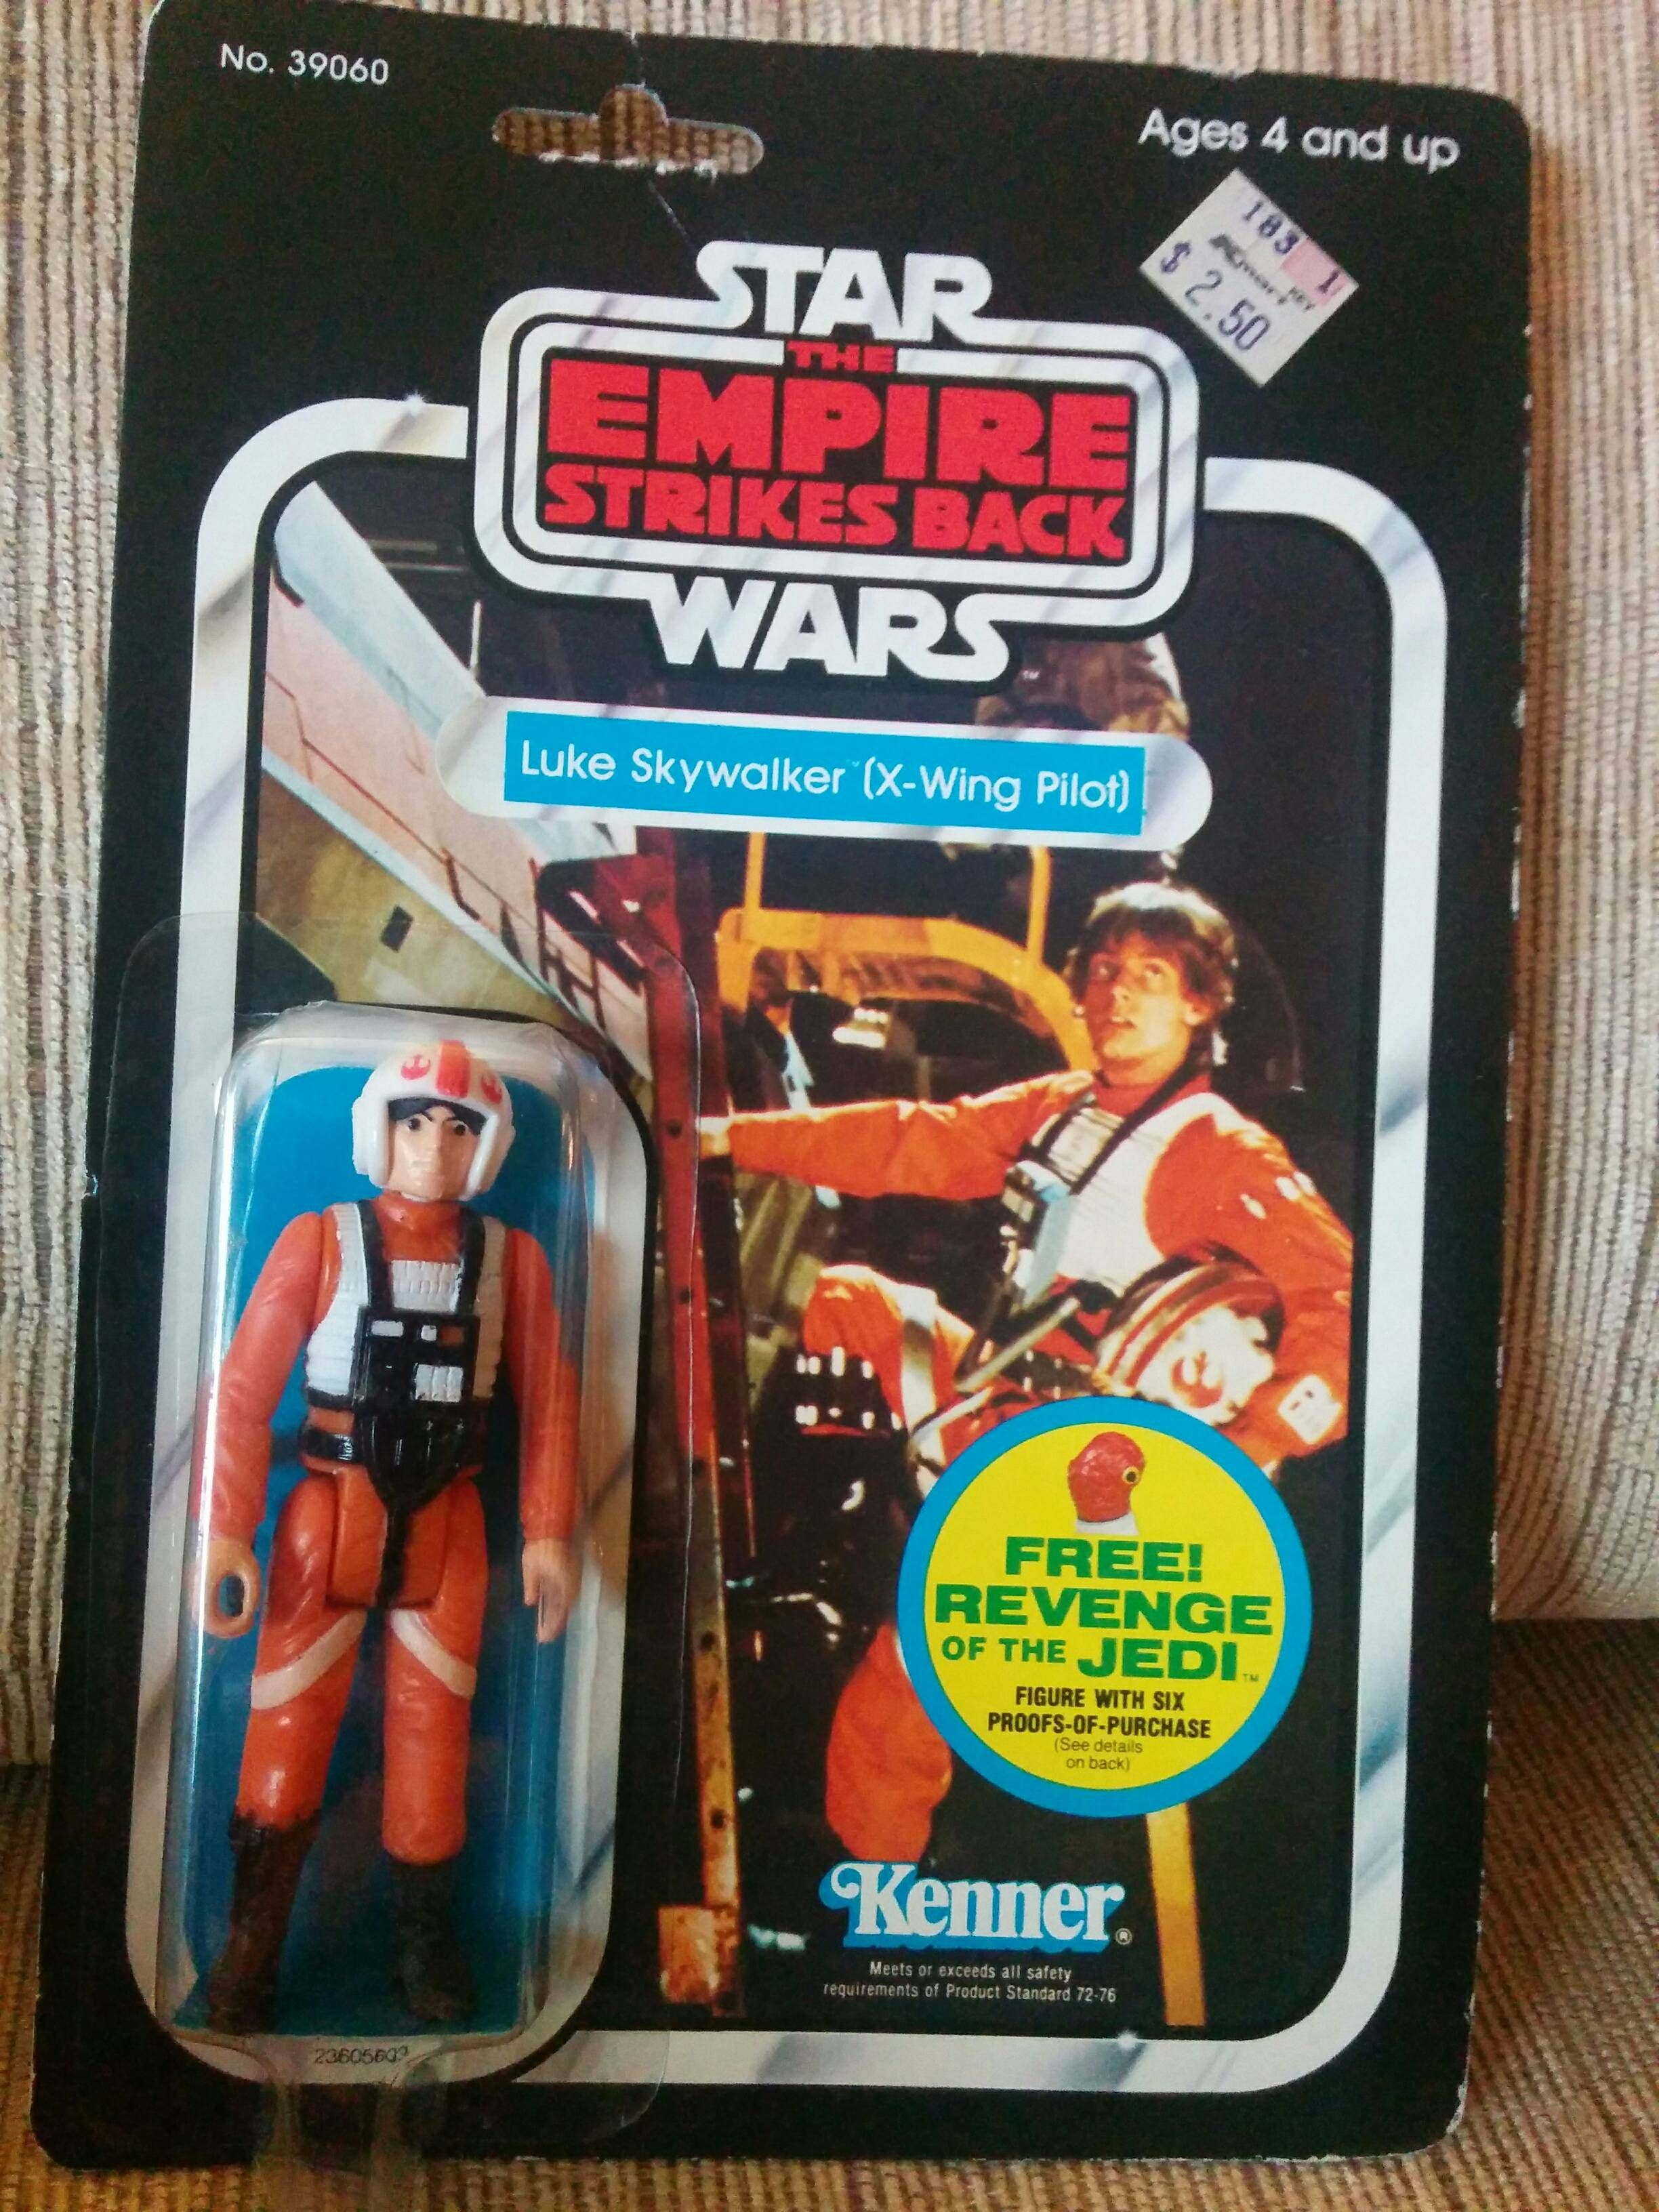 Mom Finds Forgotten 30 Year Old Star Wars Christmas Gift In Drawer